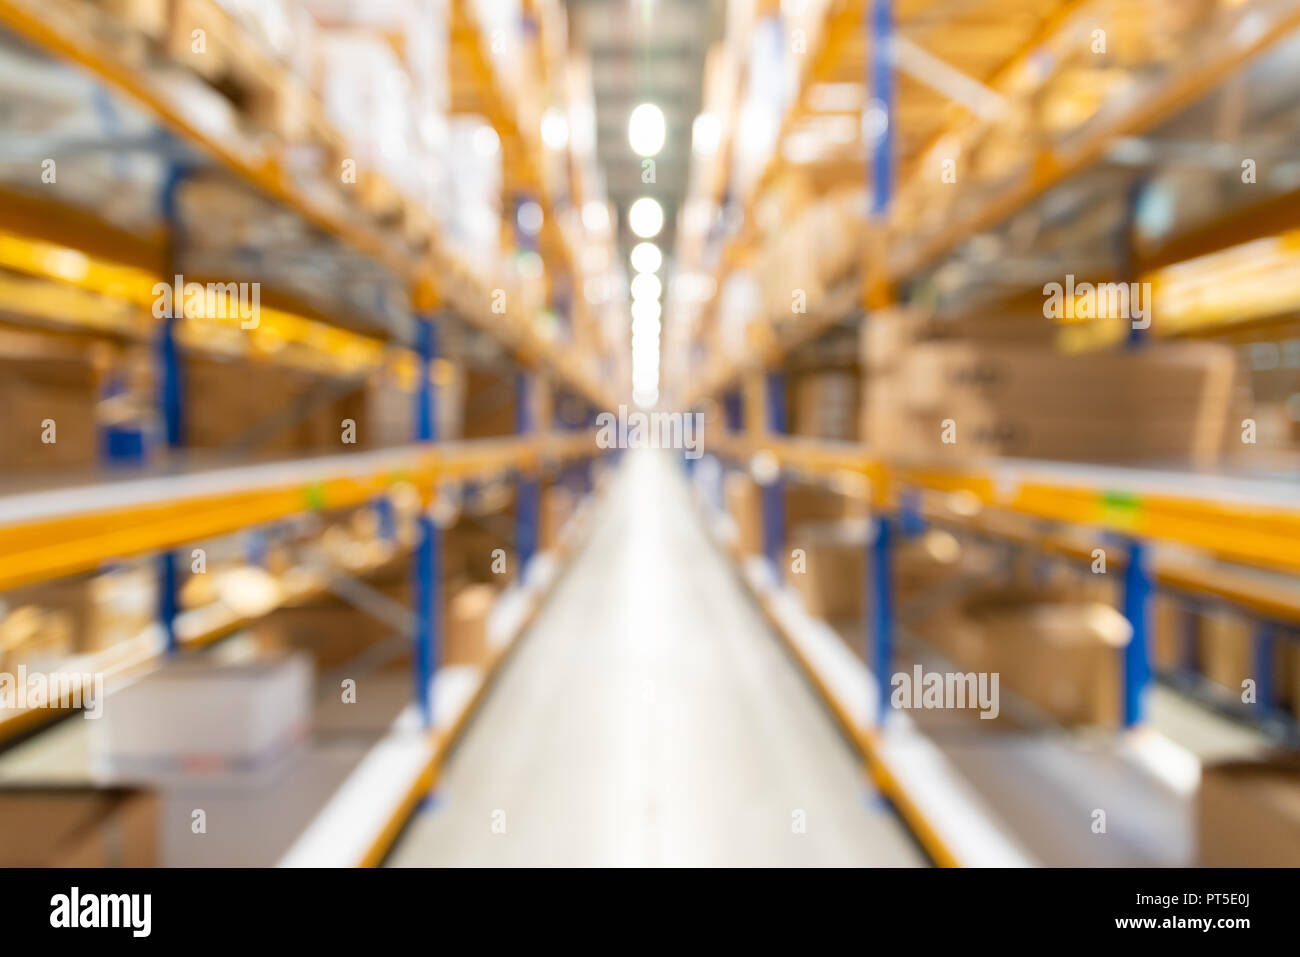 Abstract blurred warehouse at plant, background for industry Stock Photo